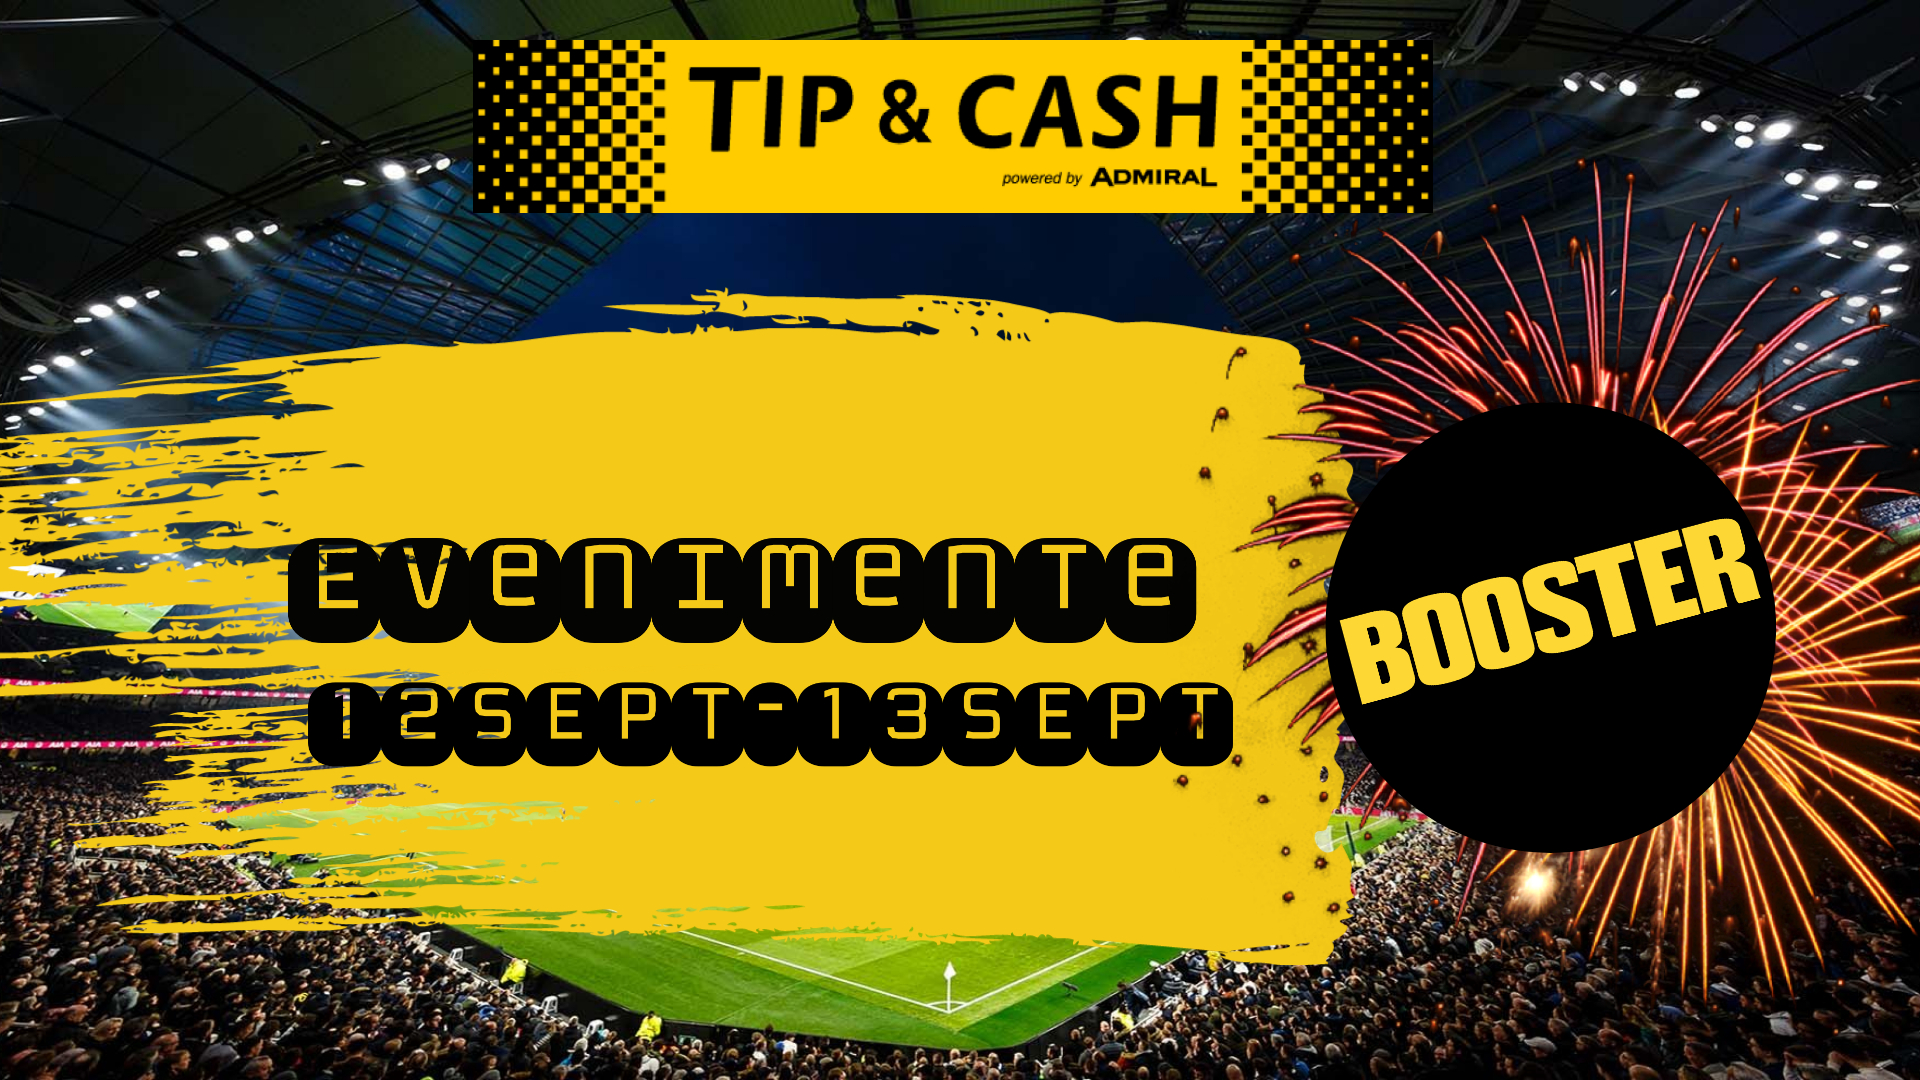 TIP&CASH BOOSTER 12-13SEPT